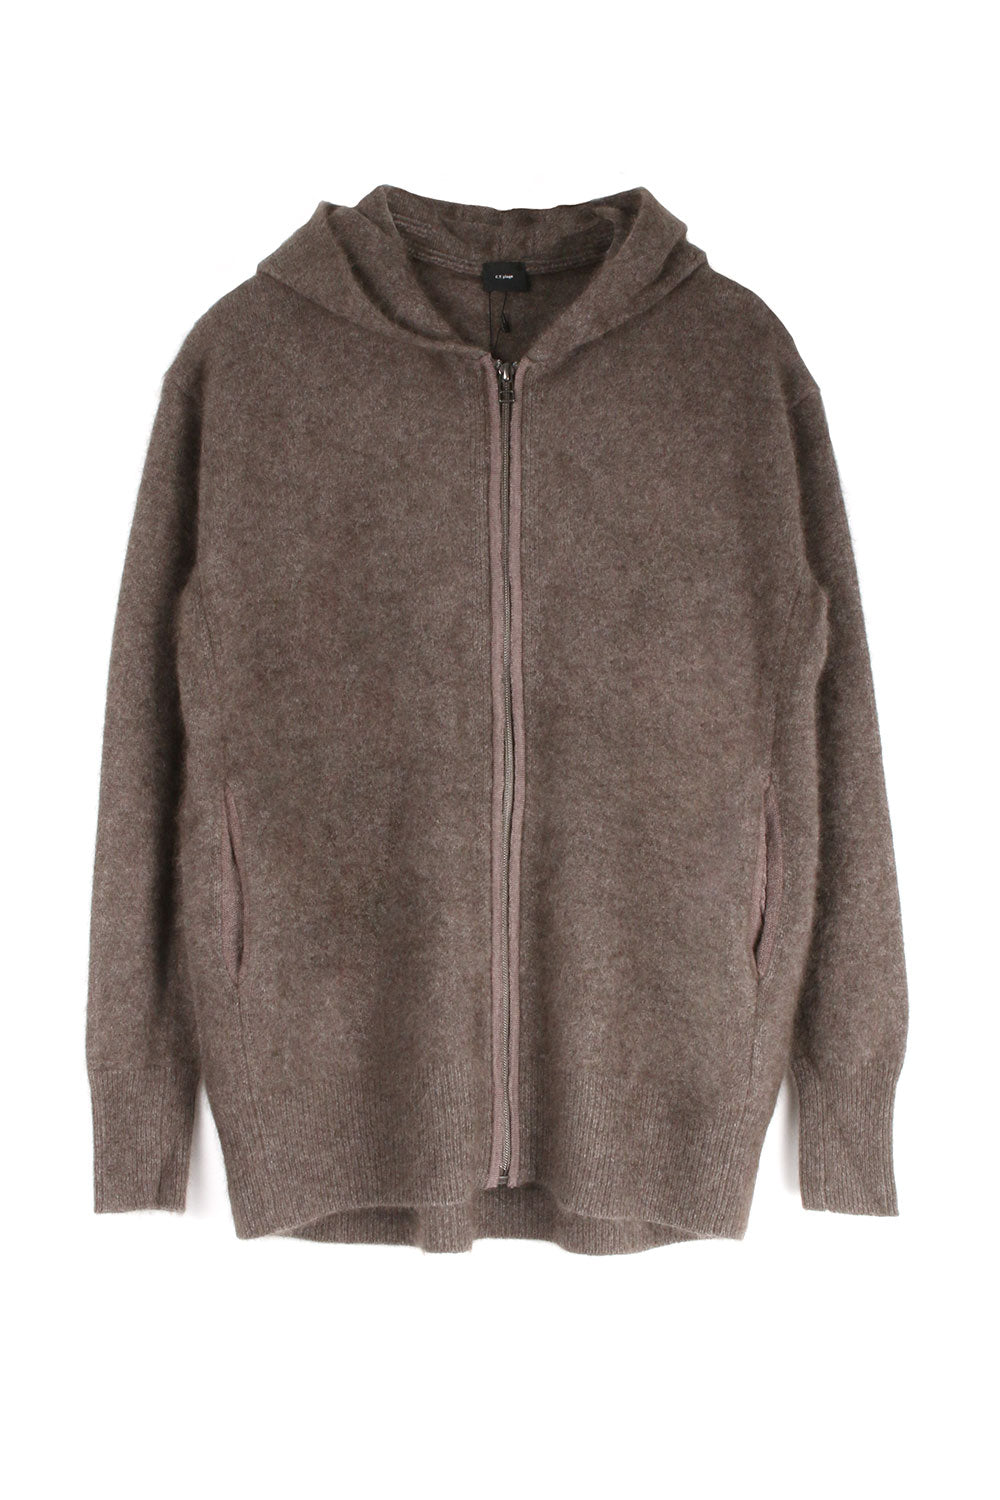 Brown Wool Zip Up